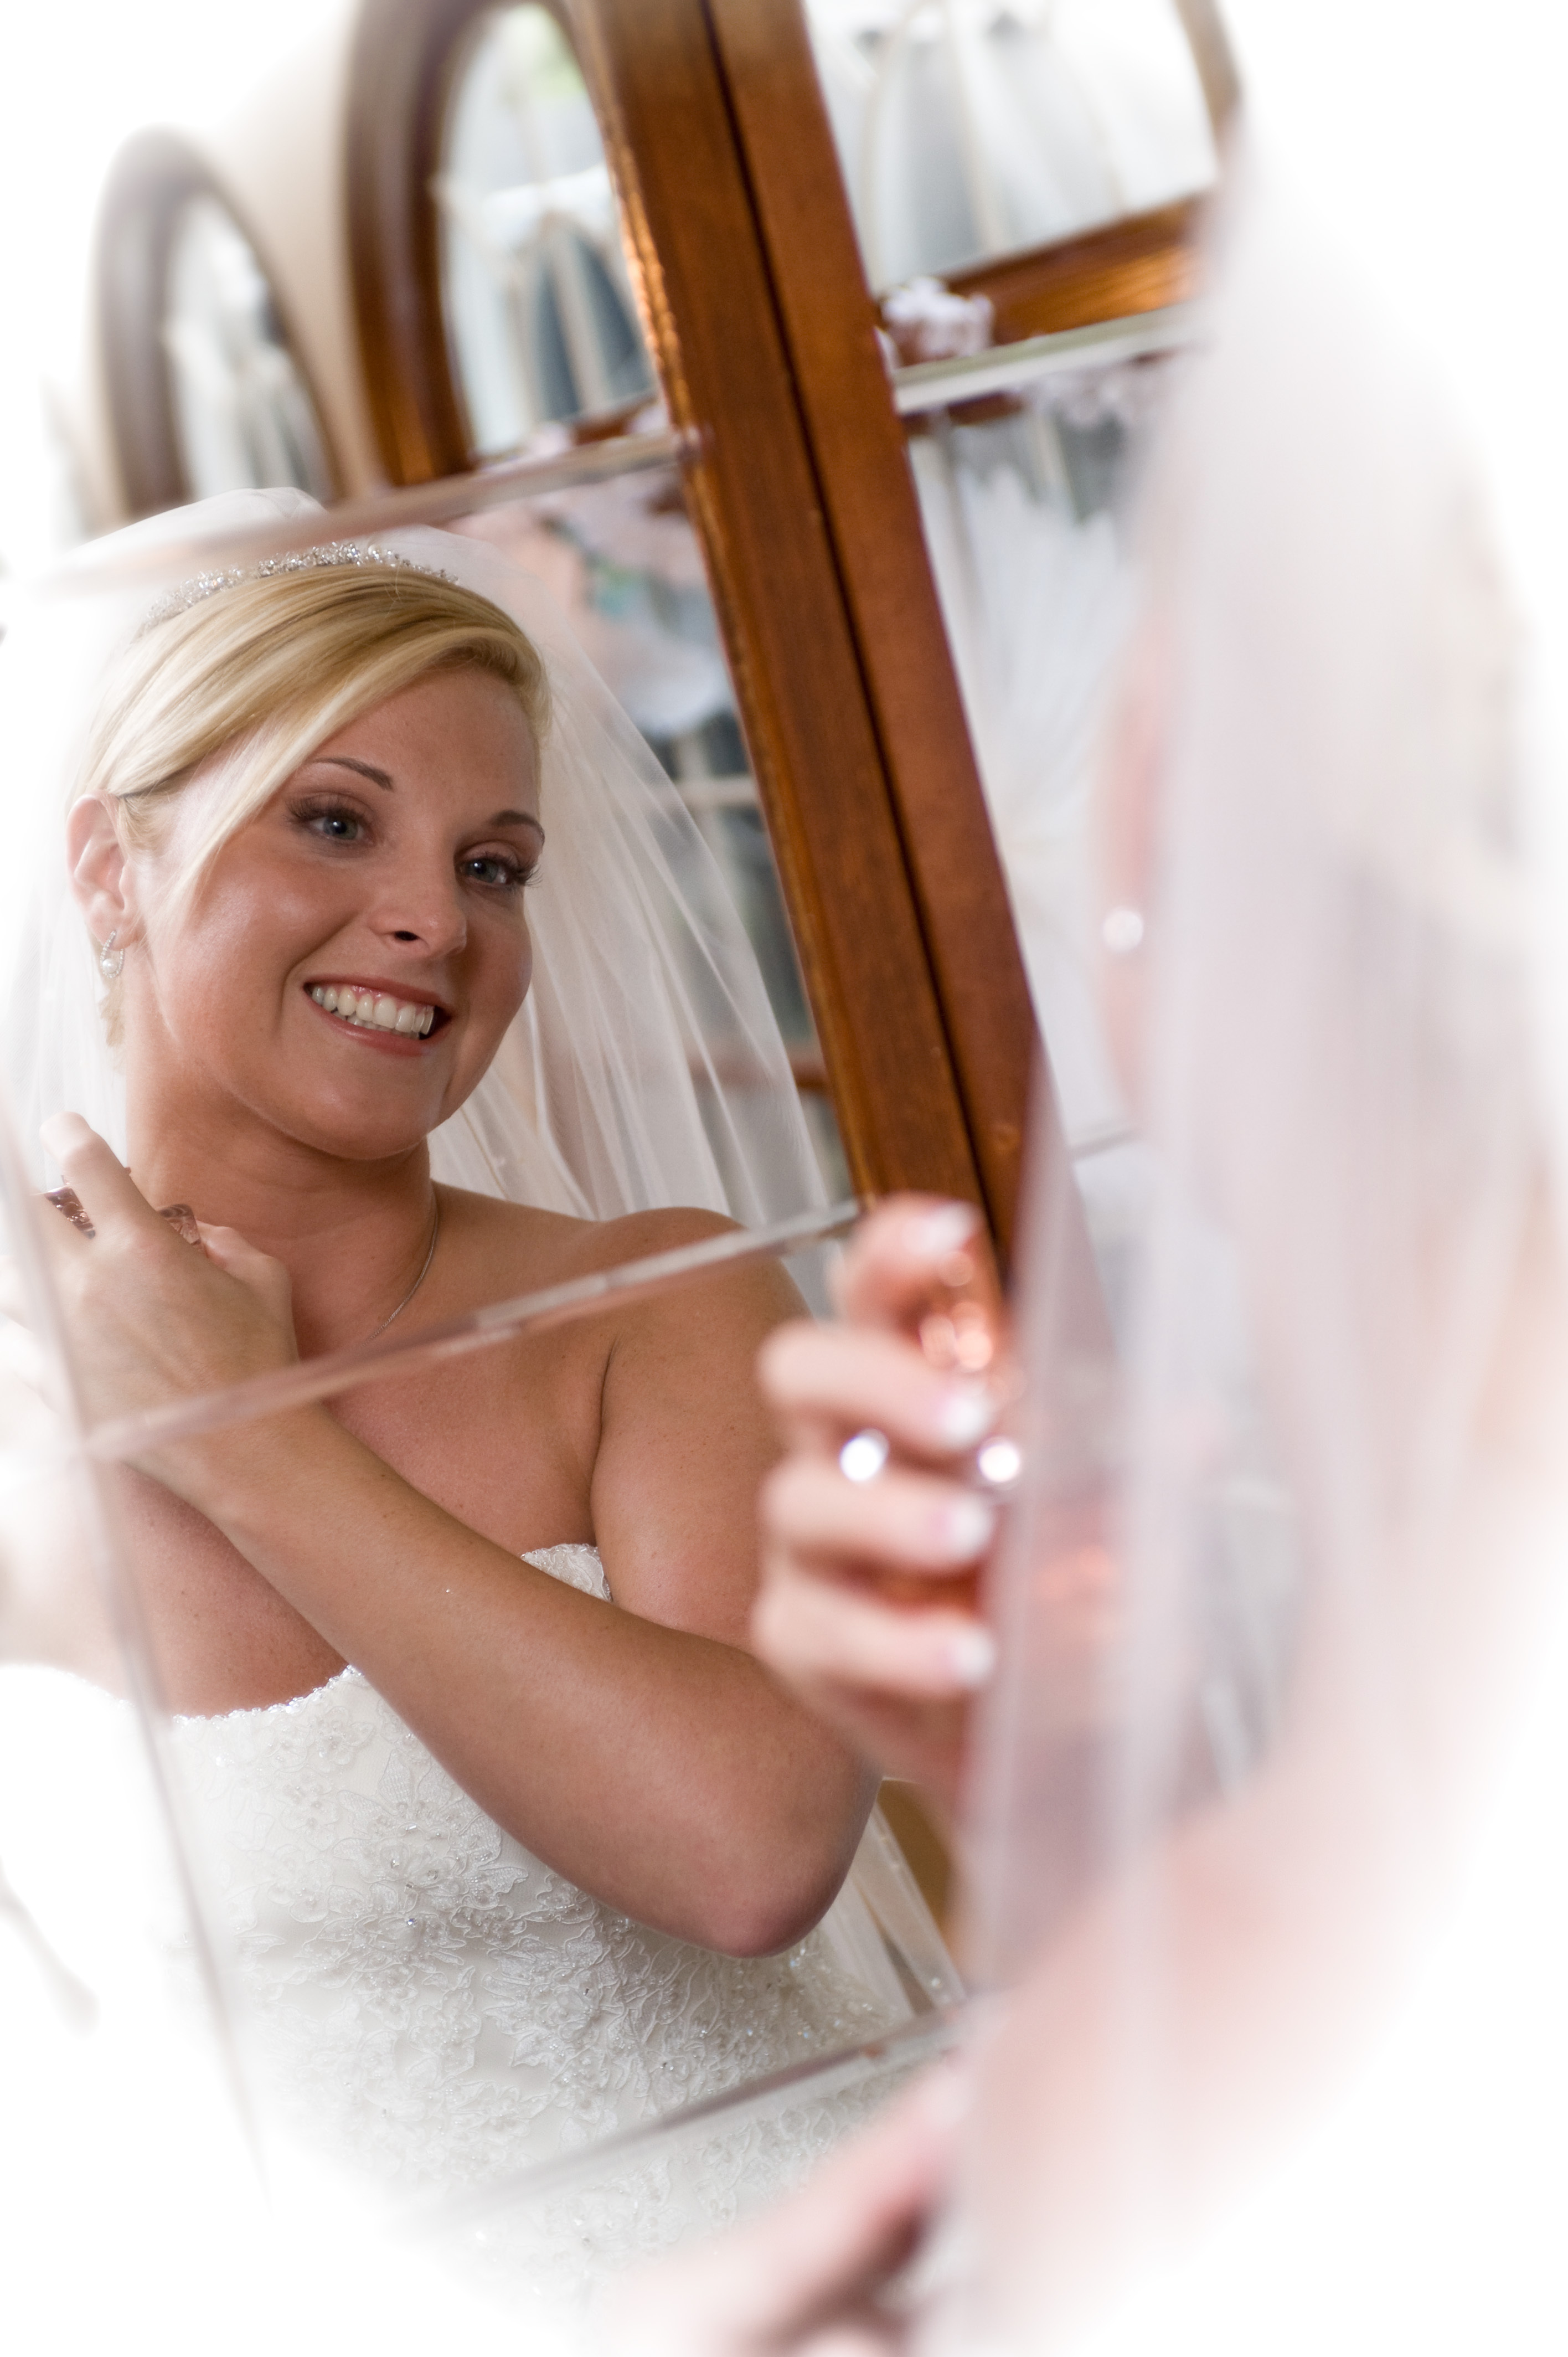 Inspiration, Wedding Dresses, Fashion, dress, Bride, Getting ready, Preparation, Board, Perfume, Mirror, Image photo studios